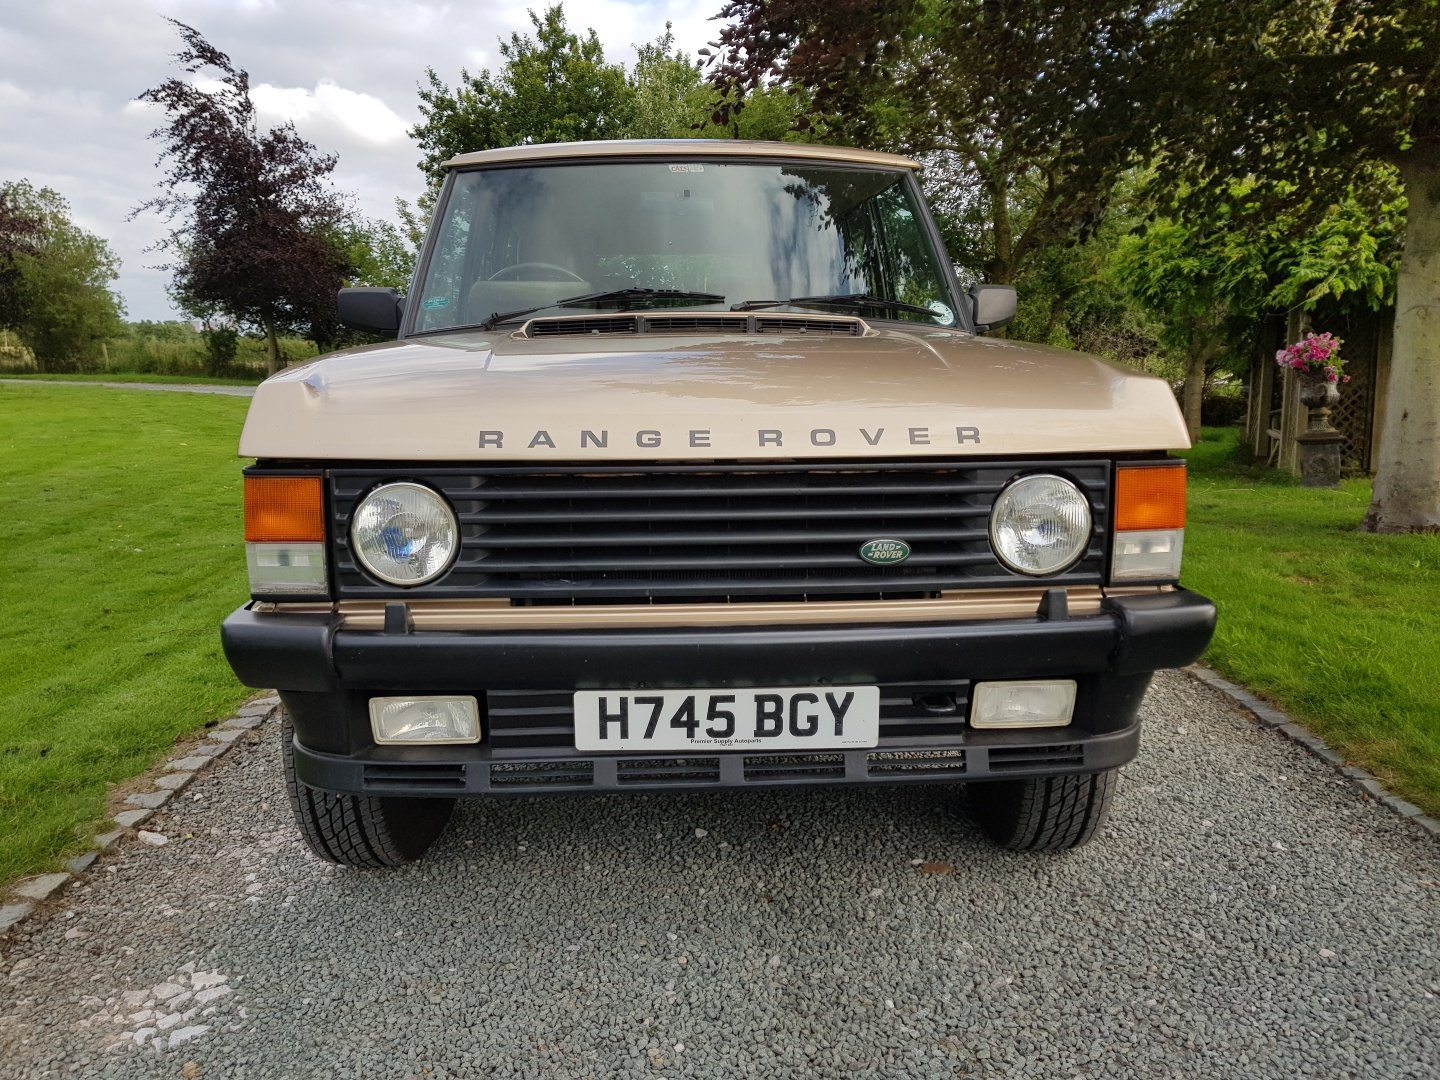 1991 Range Rover Classic 3.9 SOLD (picture 1 of 6)